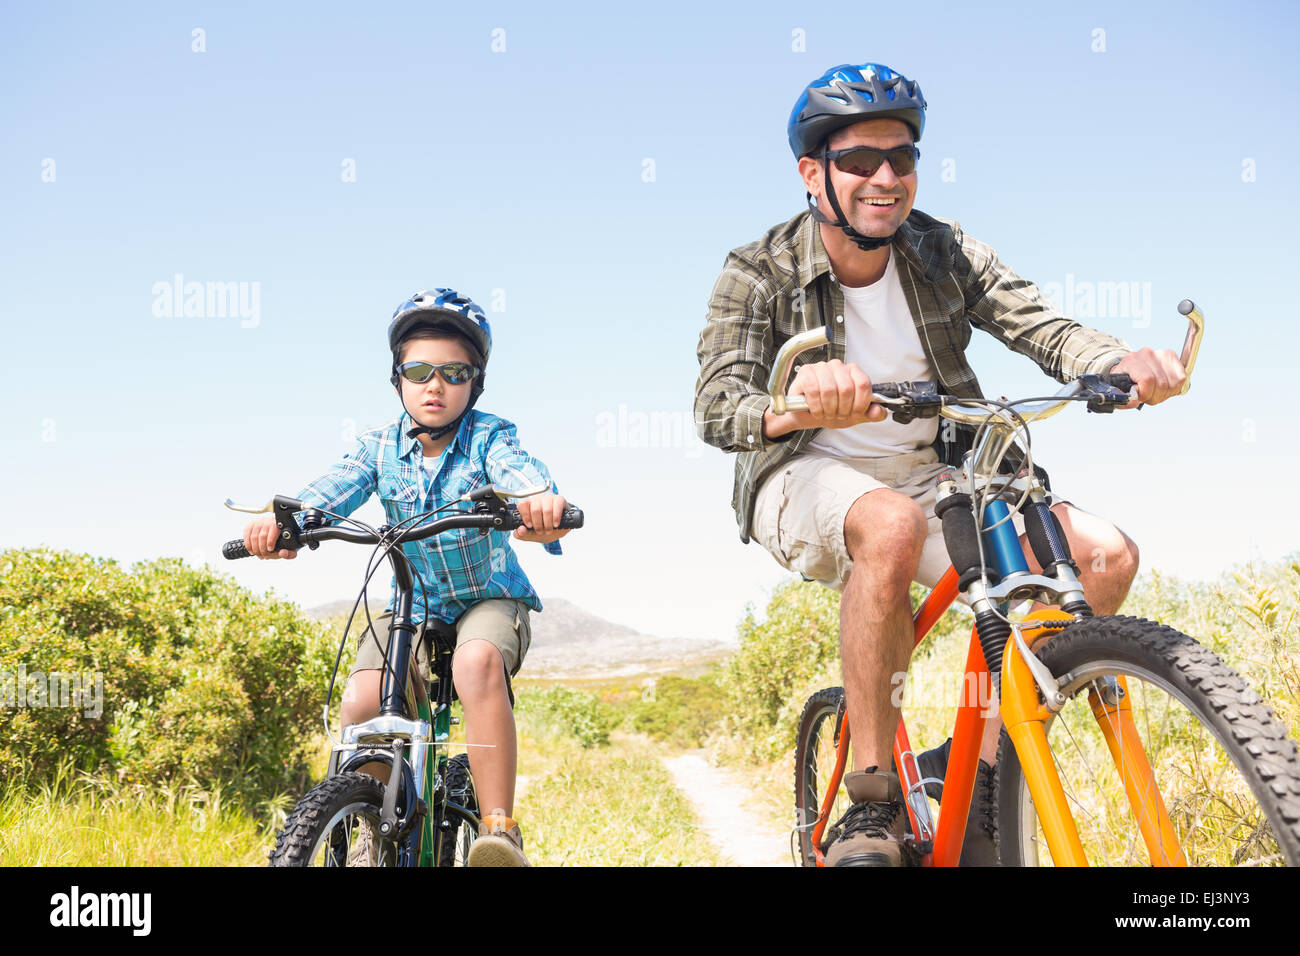 Father and son biking through mountains - Stock Image